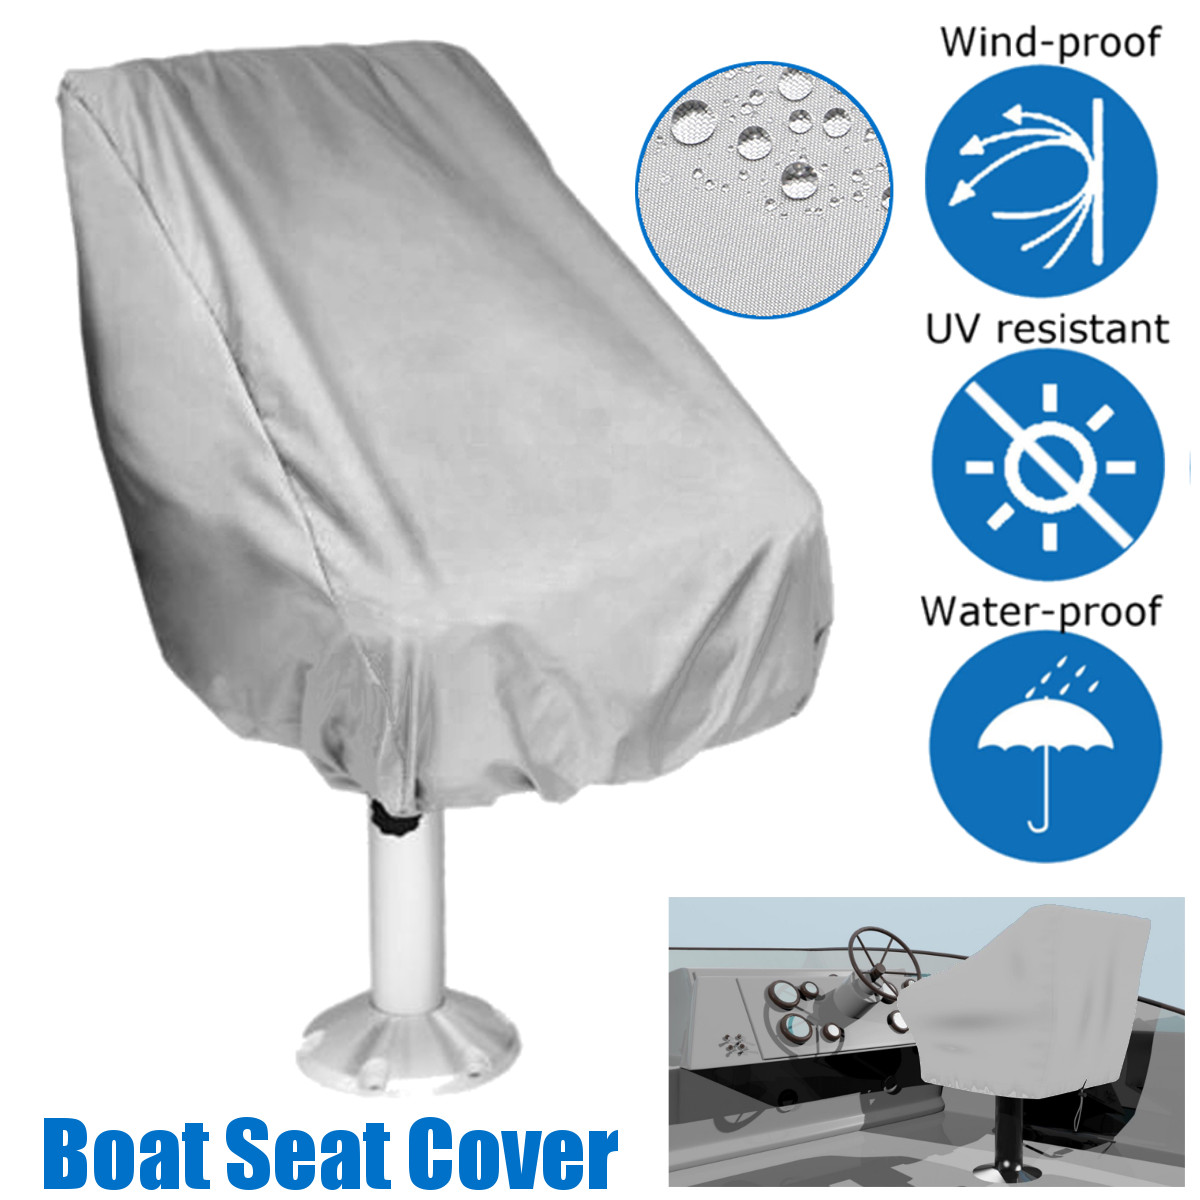 Boat Cover Initiative 56*61*64cm Boat Seat Cover Dust Waterproof Seat Cover Elastic Closure Outdoor Yacht Ship Lift Rotate Chair/table Furniture Cover